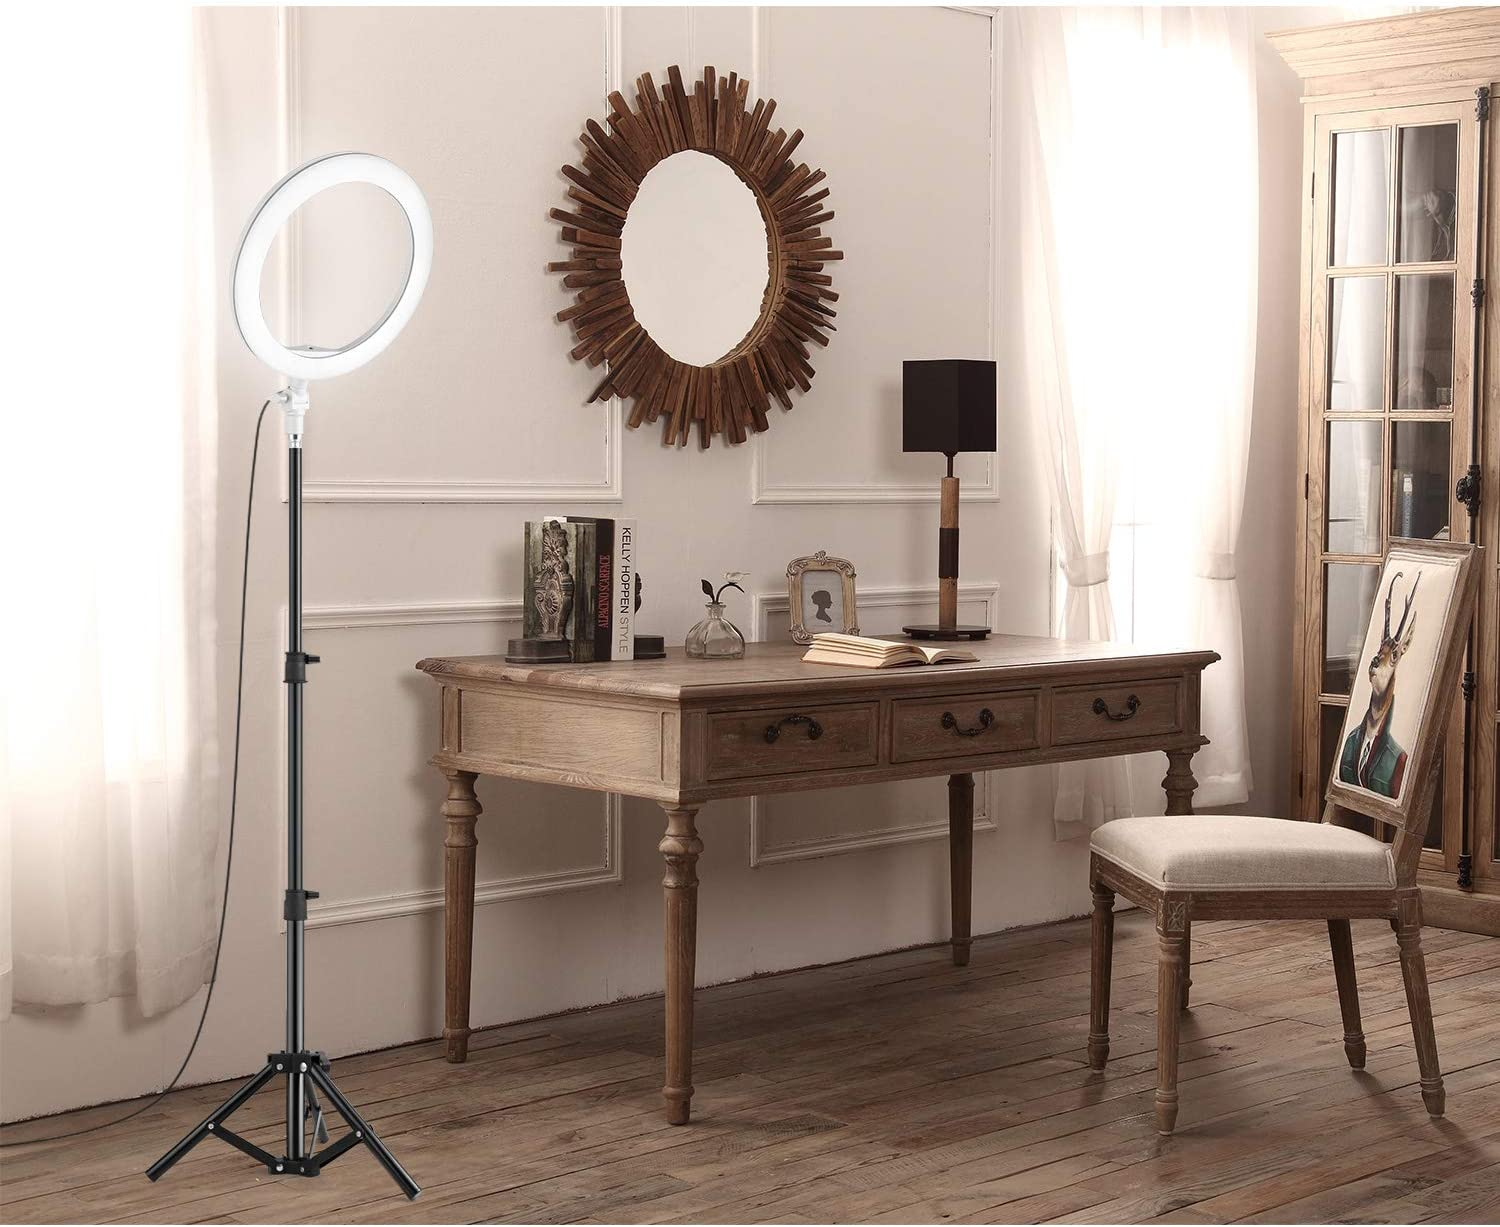 10.2 Ring Light Desk Makeup Video LED Selfie Ringlight with Stand Tripod Dimmable Circle Lights Lamp for Live Streaming YouTube Reading